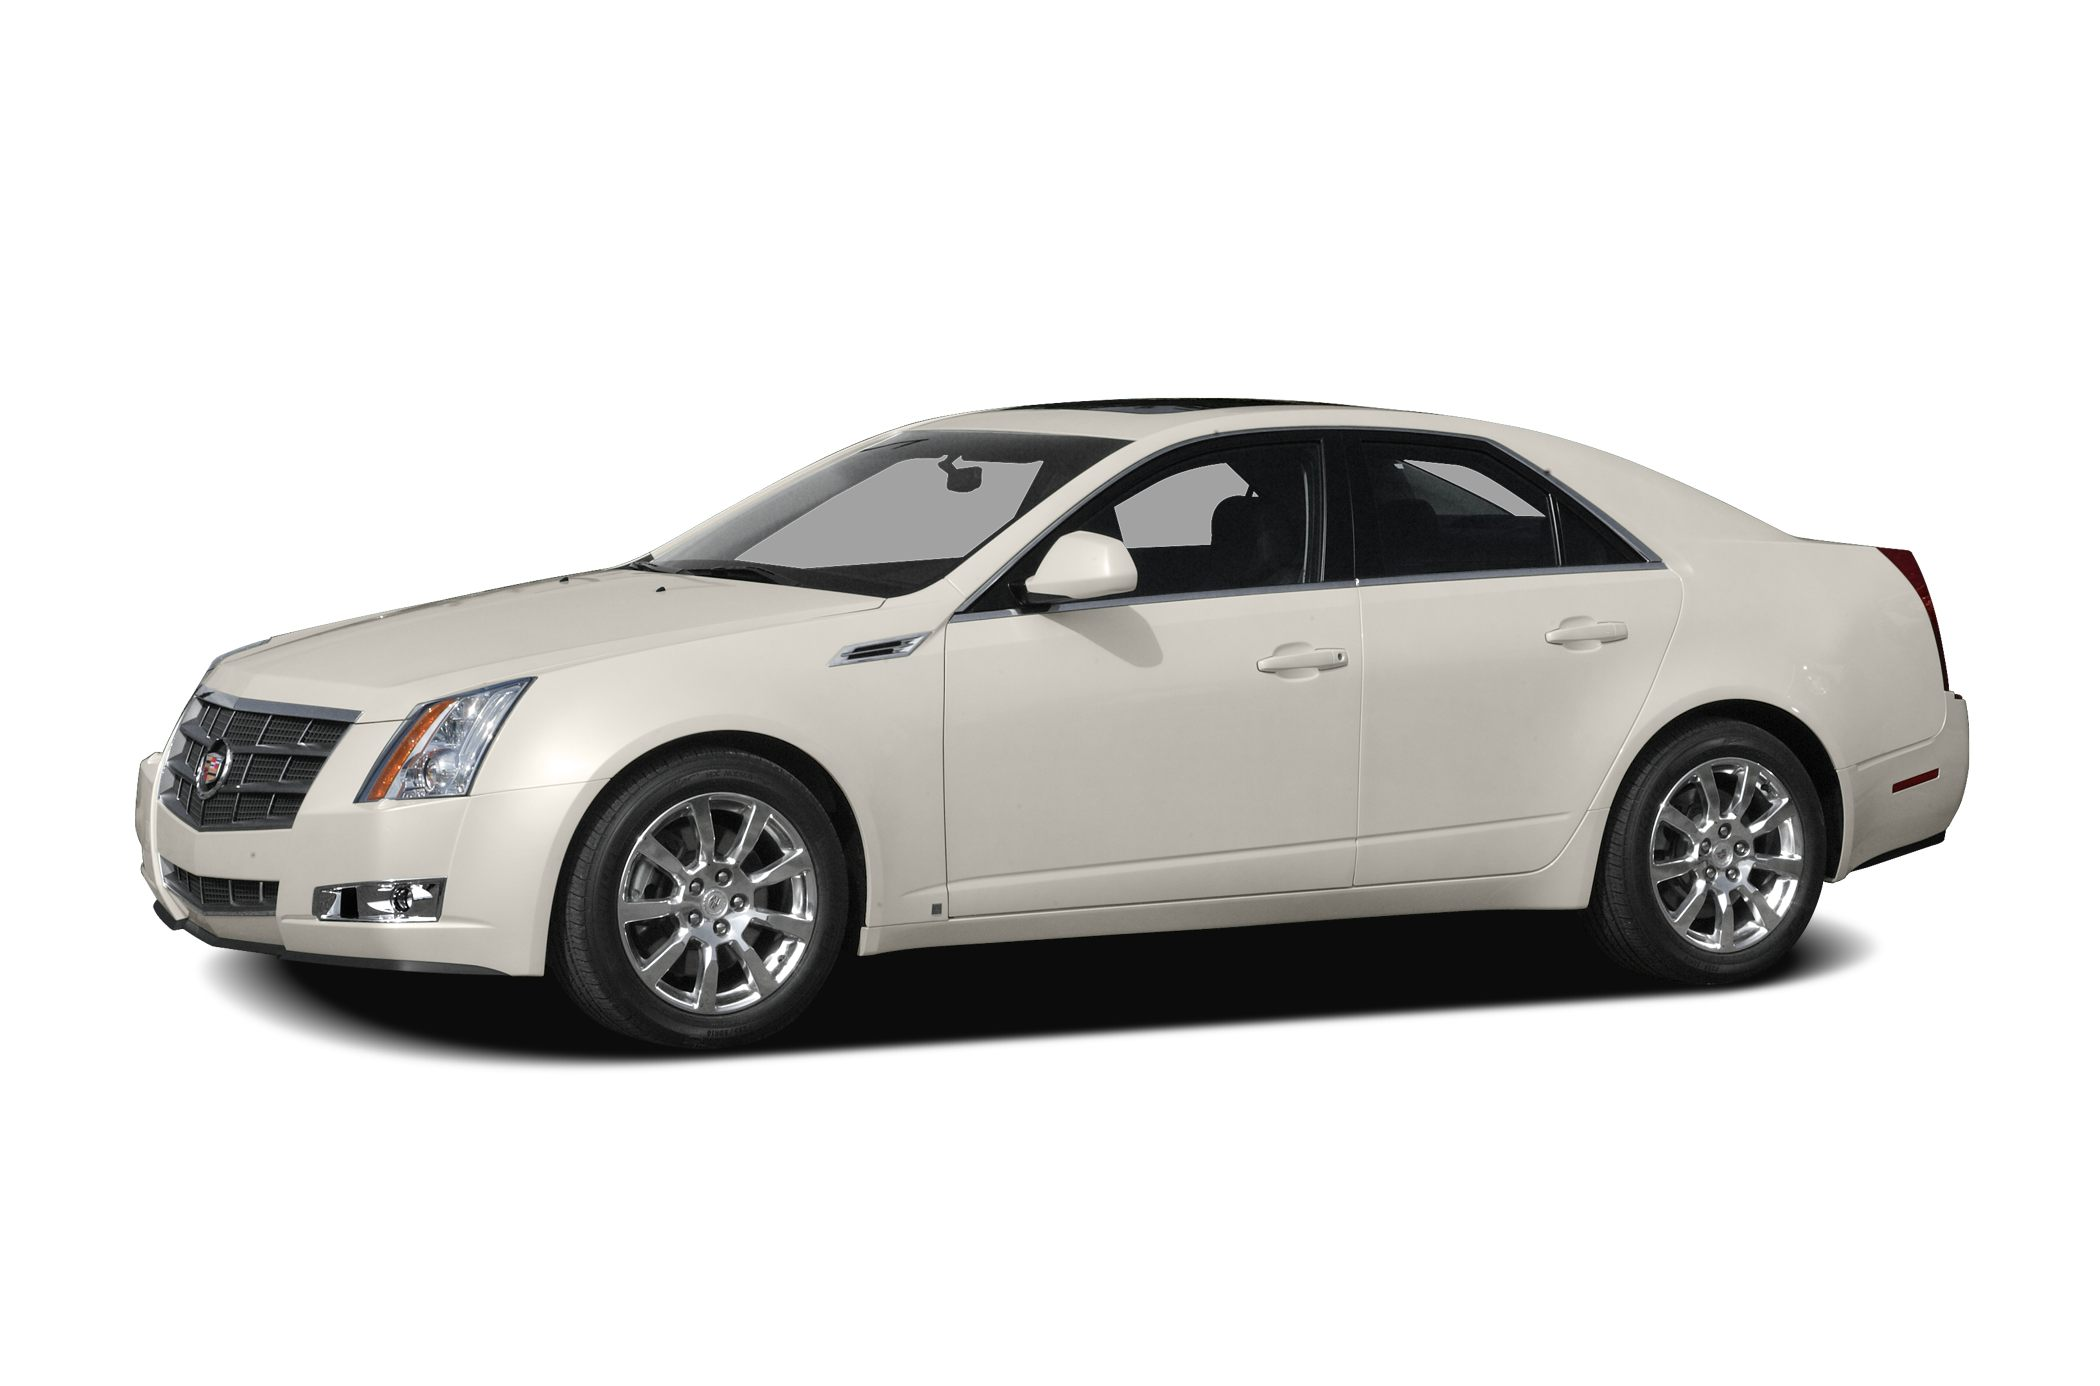 2008 Cadillac Cts Styles Amp Features Highlights